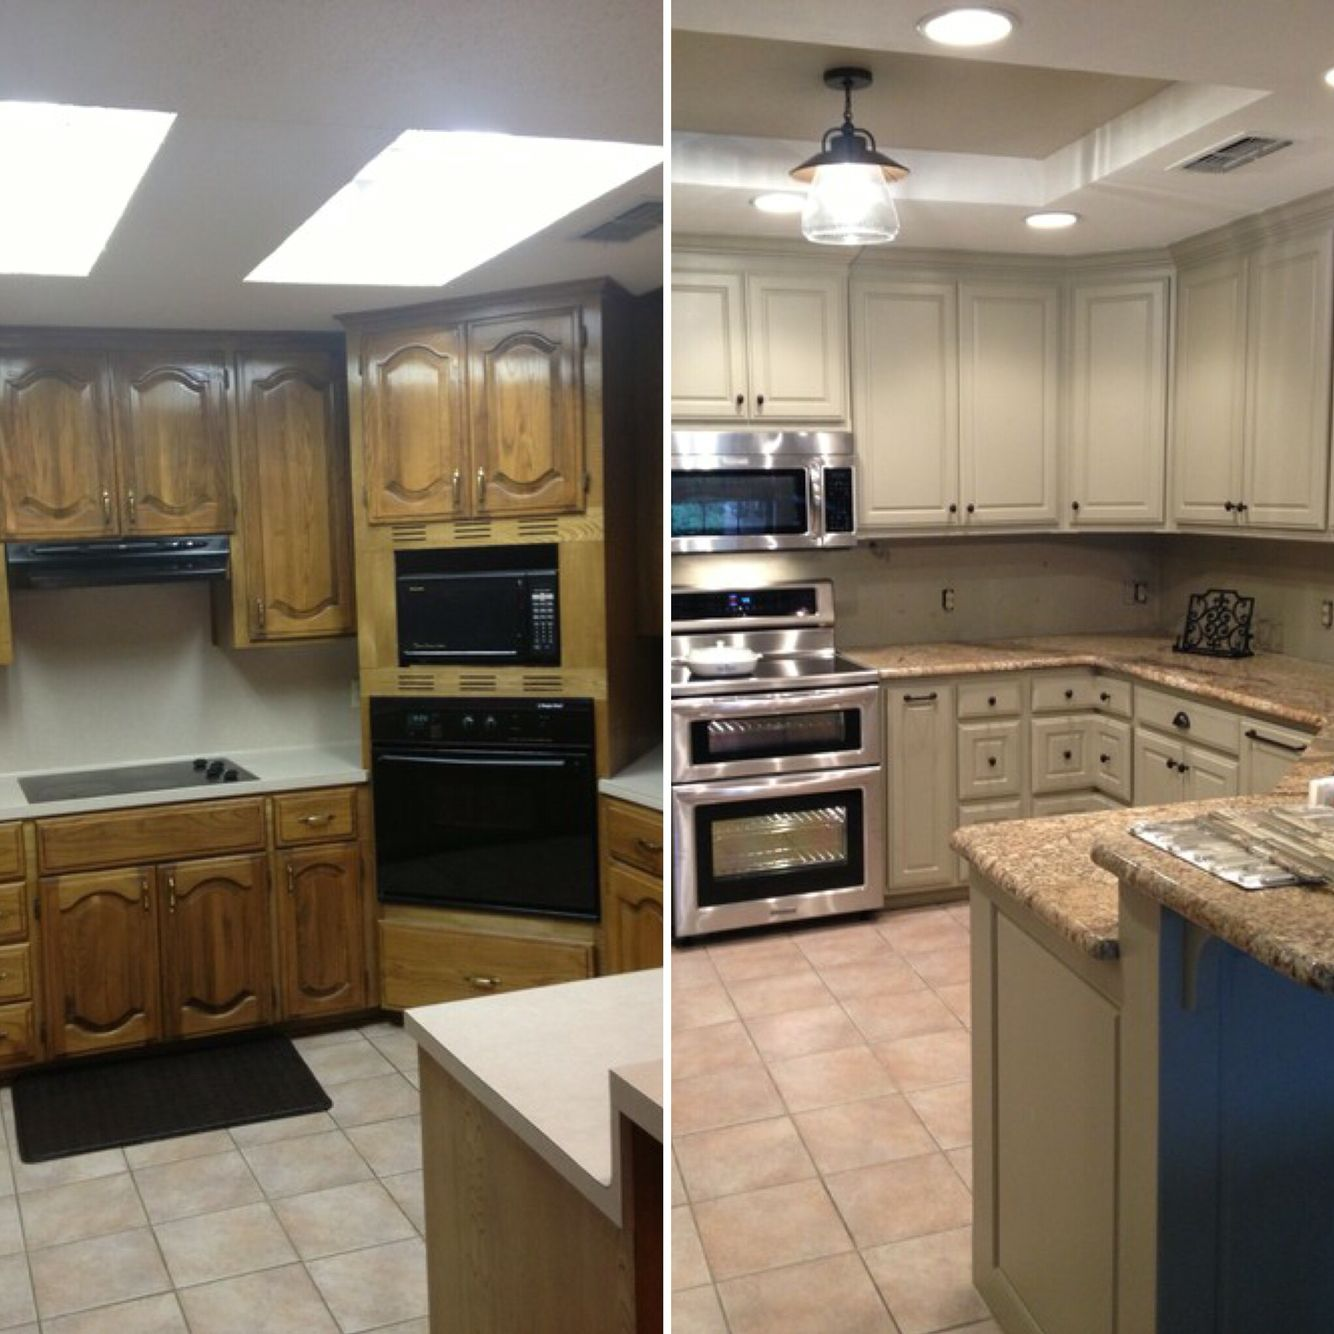 Gentil Before And After For Updating Drop Ceiling Kitchen Fluorescent Lighting